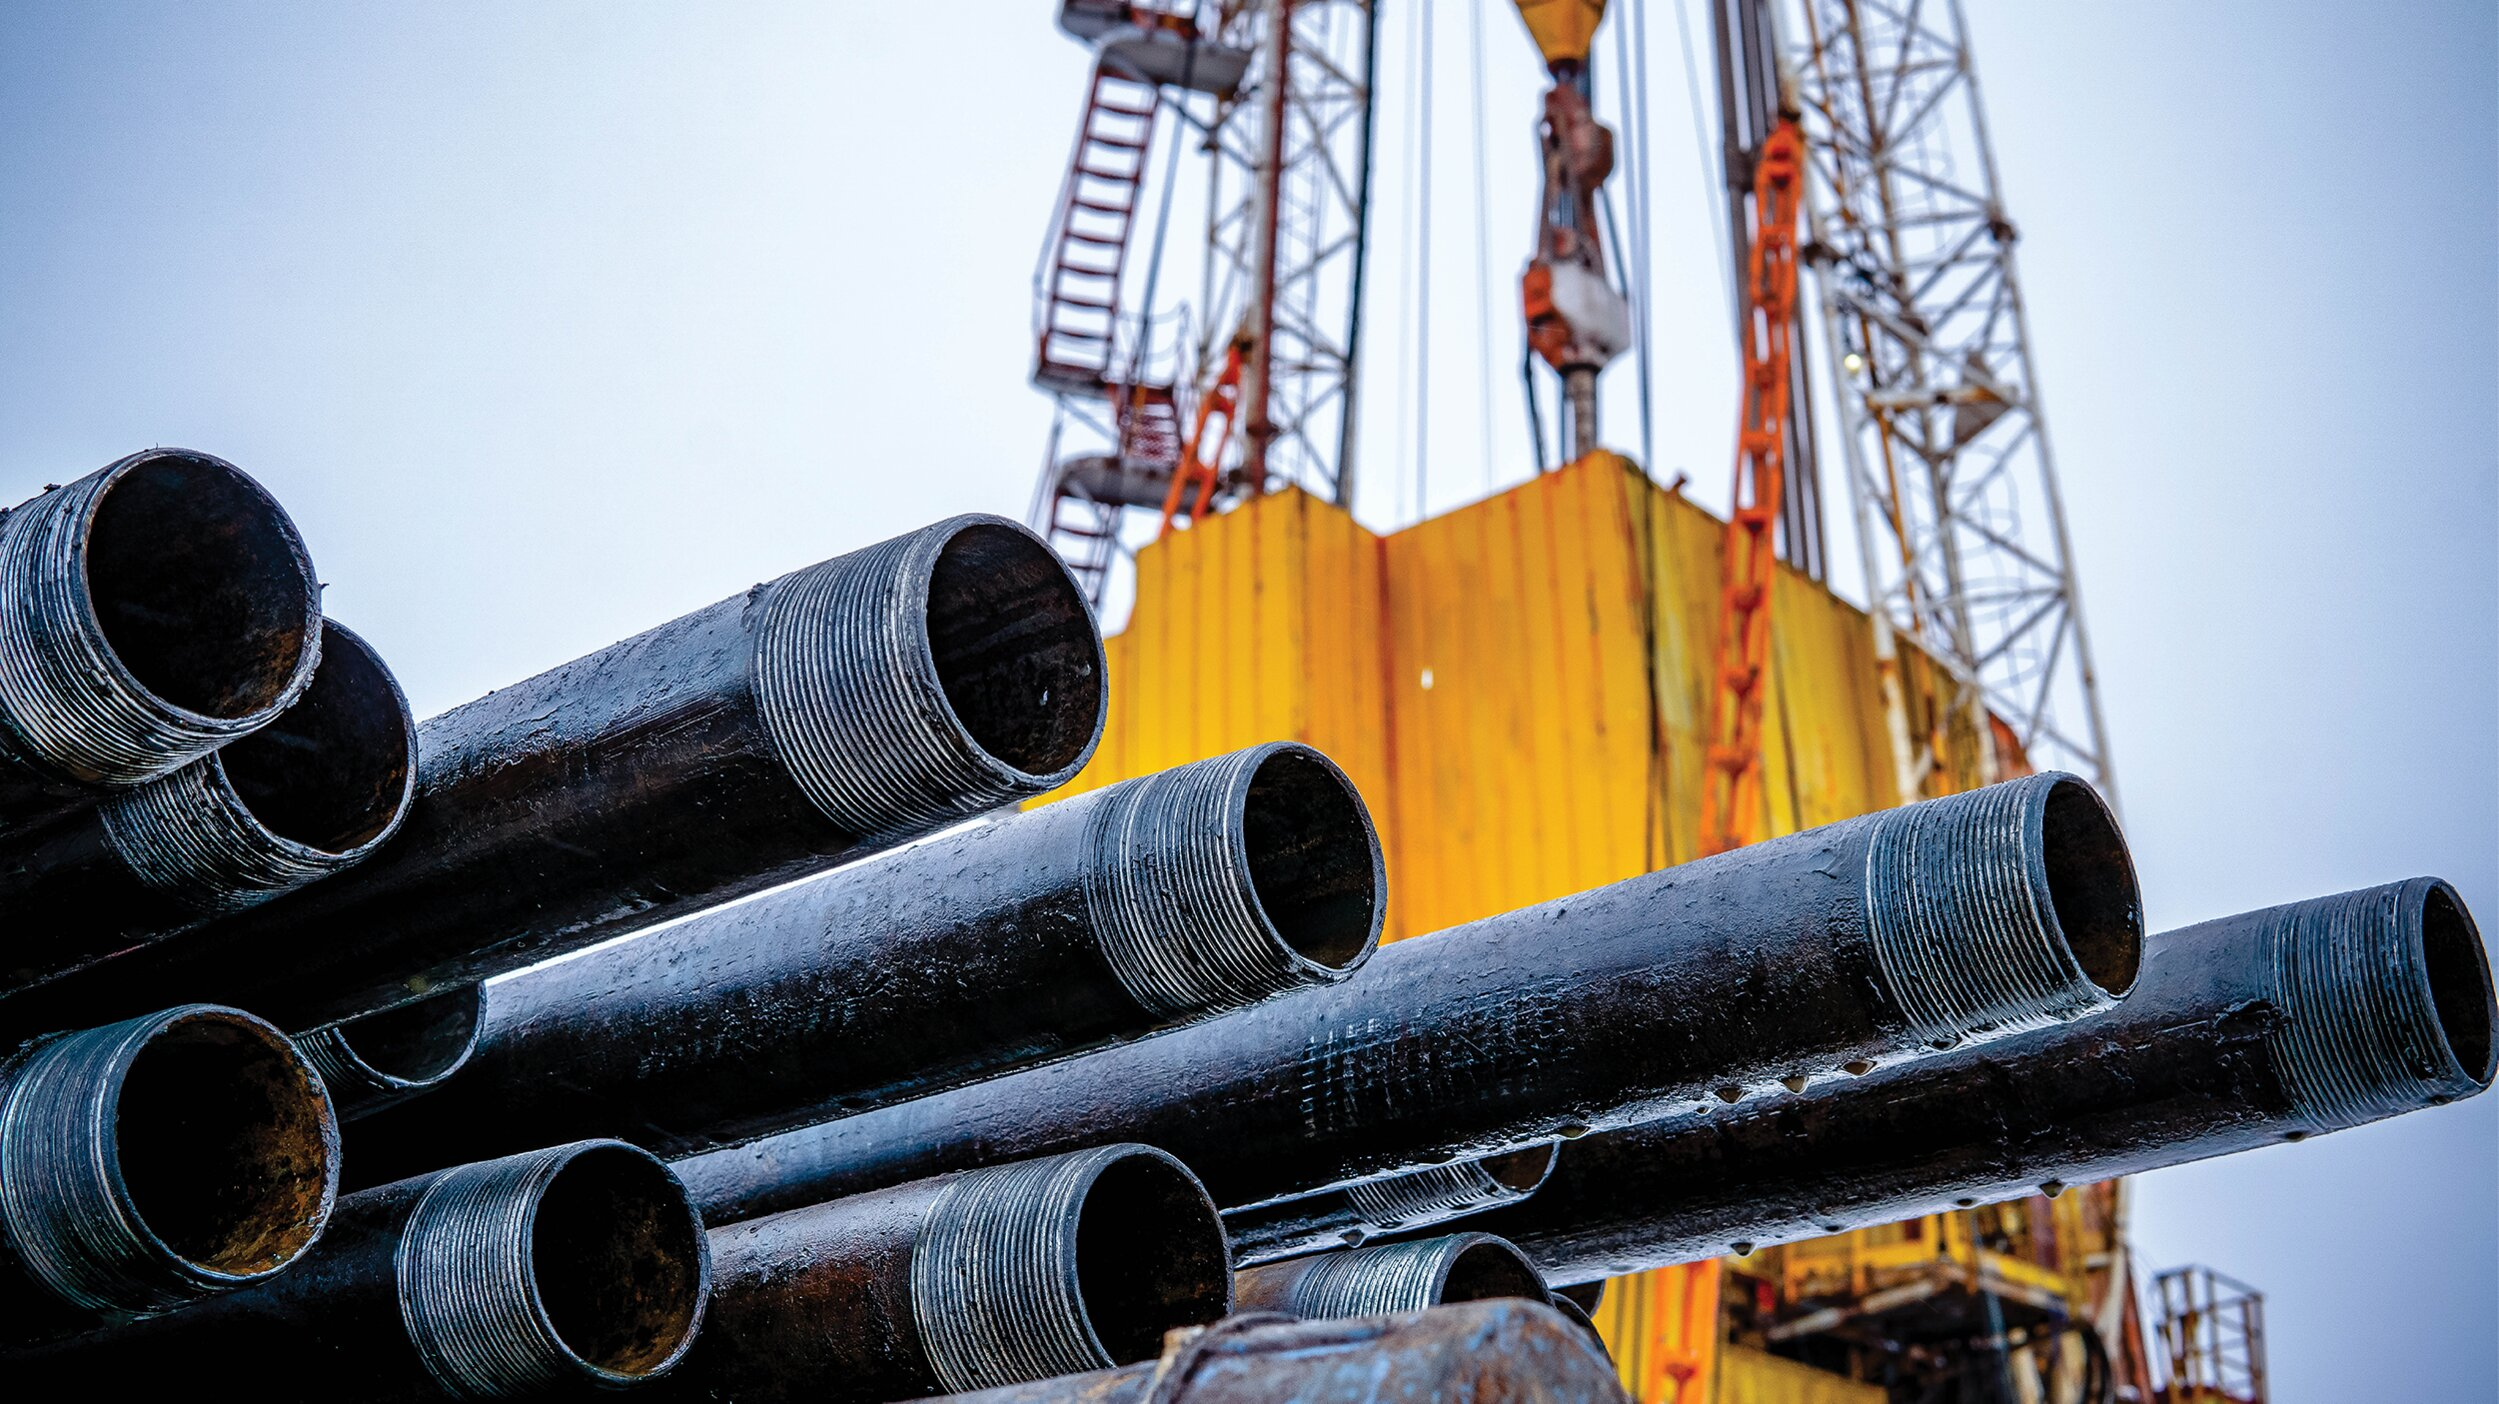 Proven corrosion control for lower costs